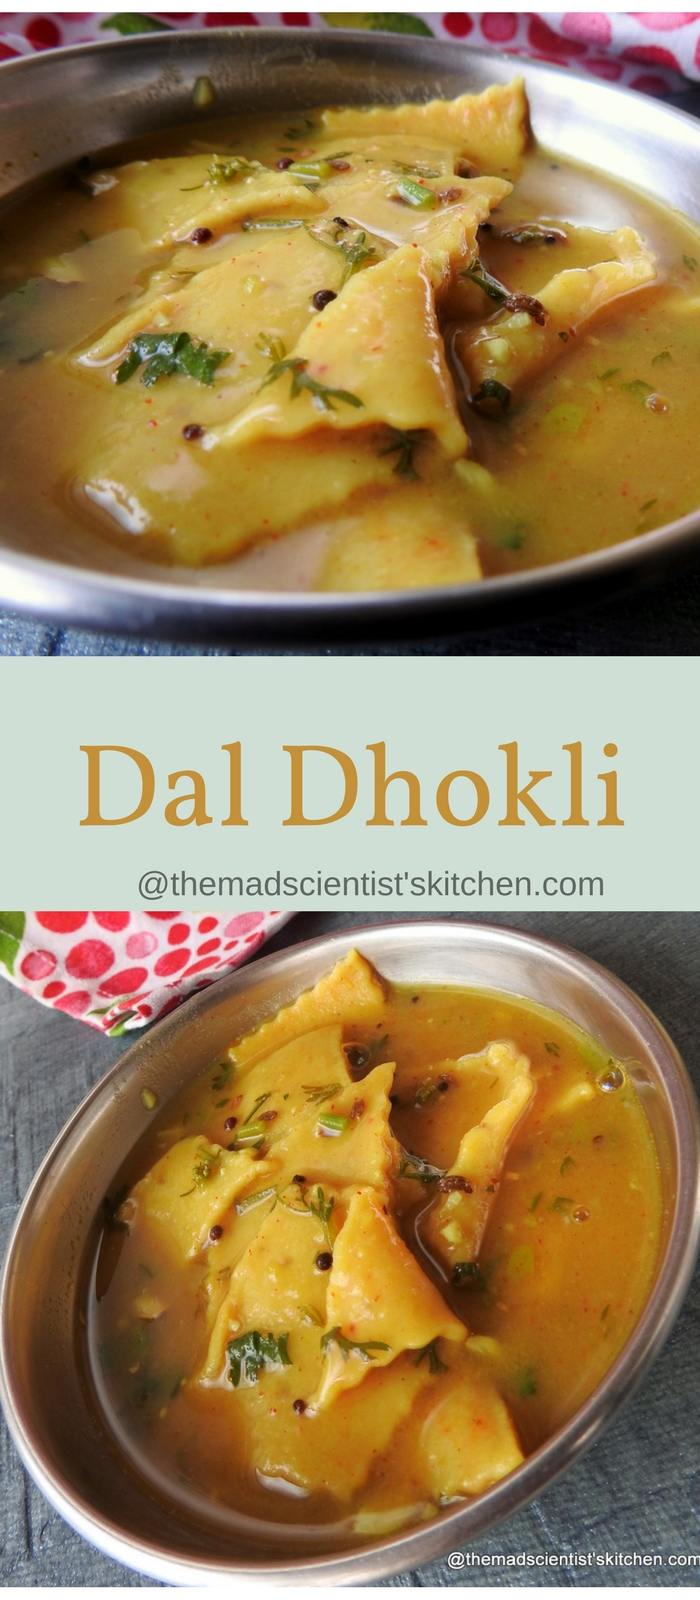 Dal Dhokli| Stew of Dal and Wheat Flour Noodles